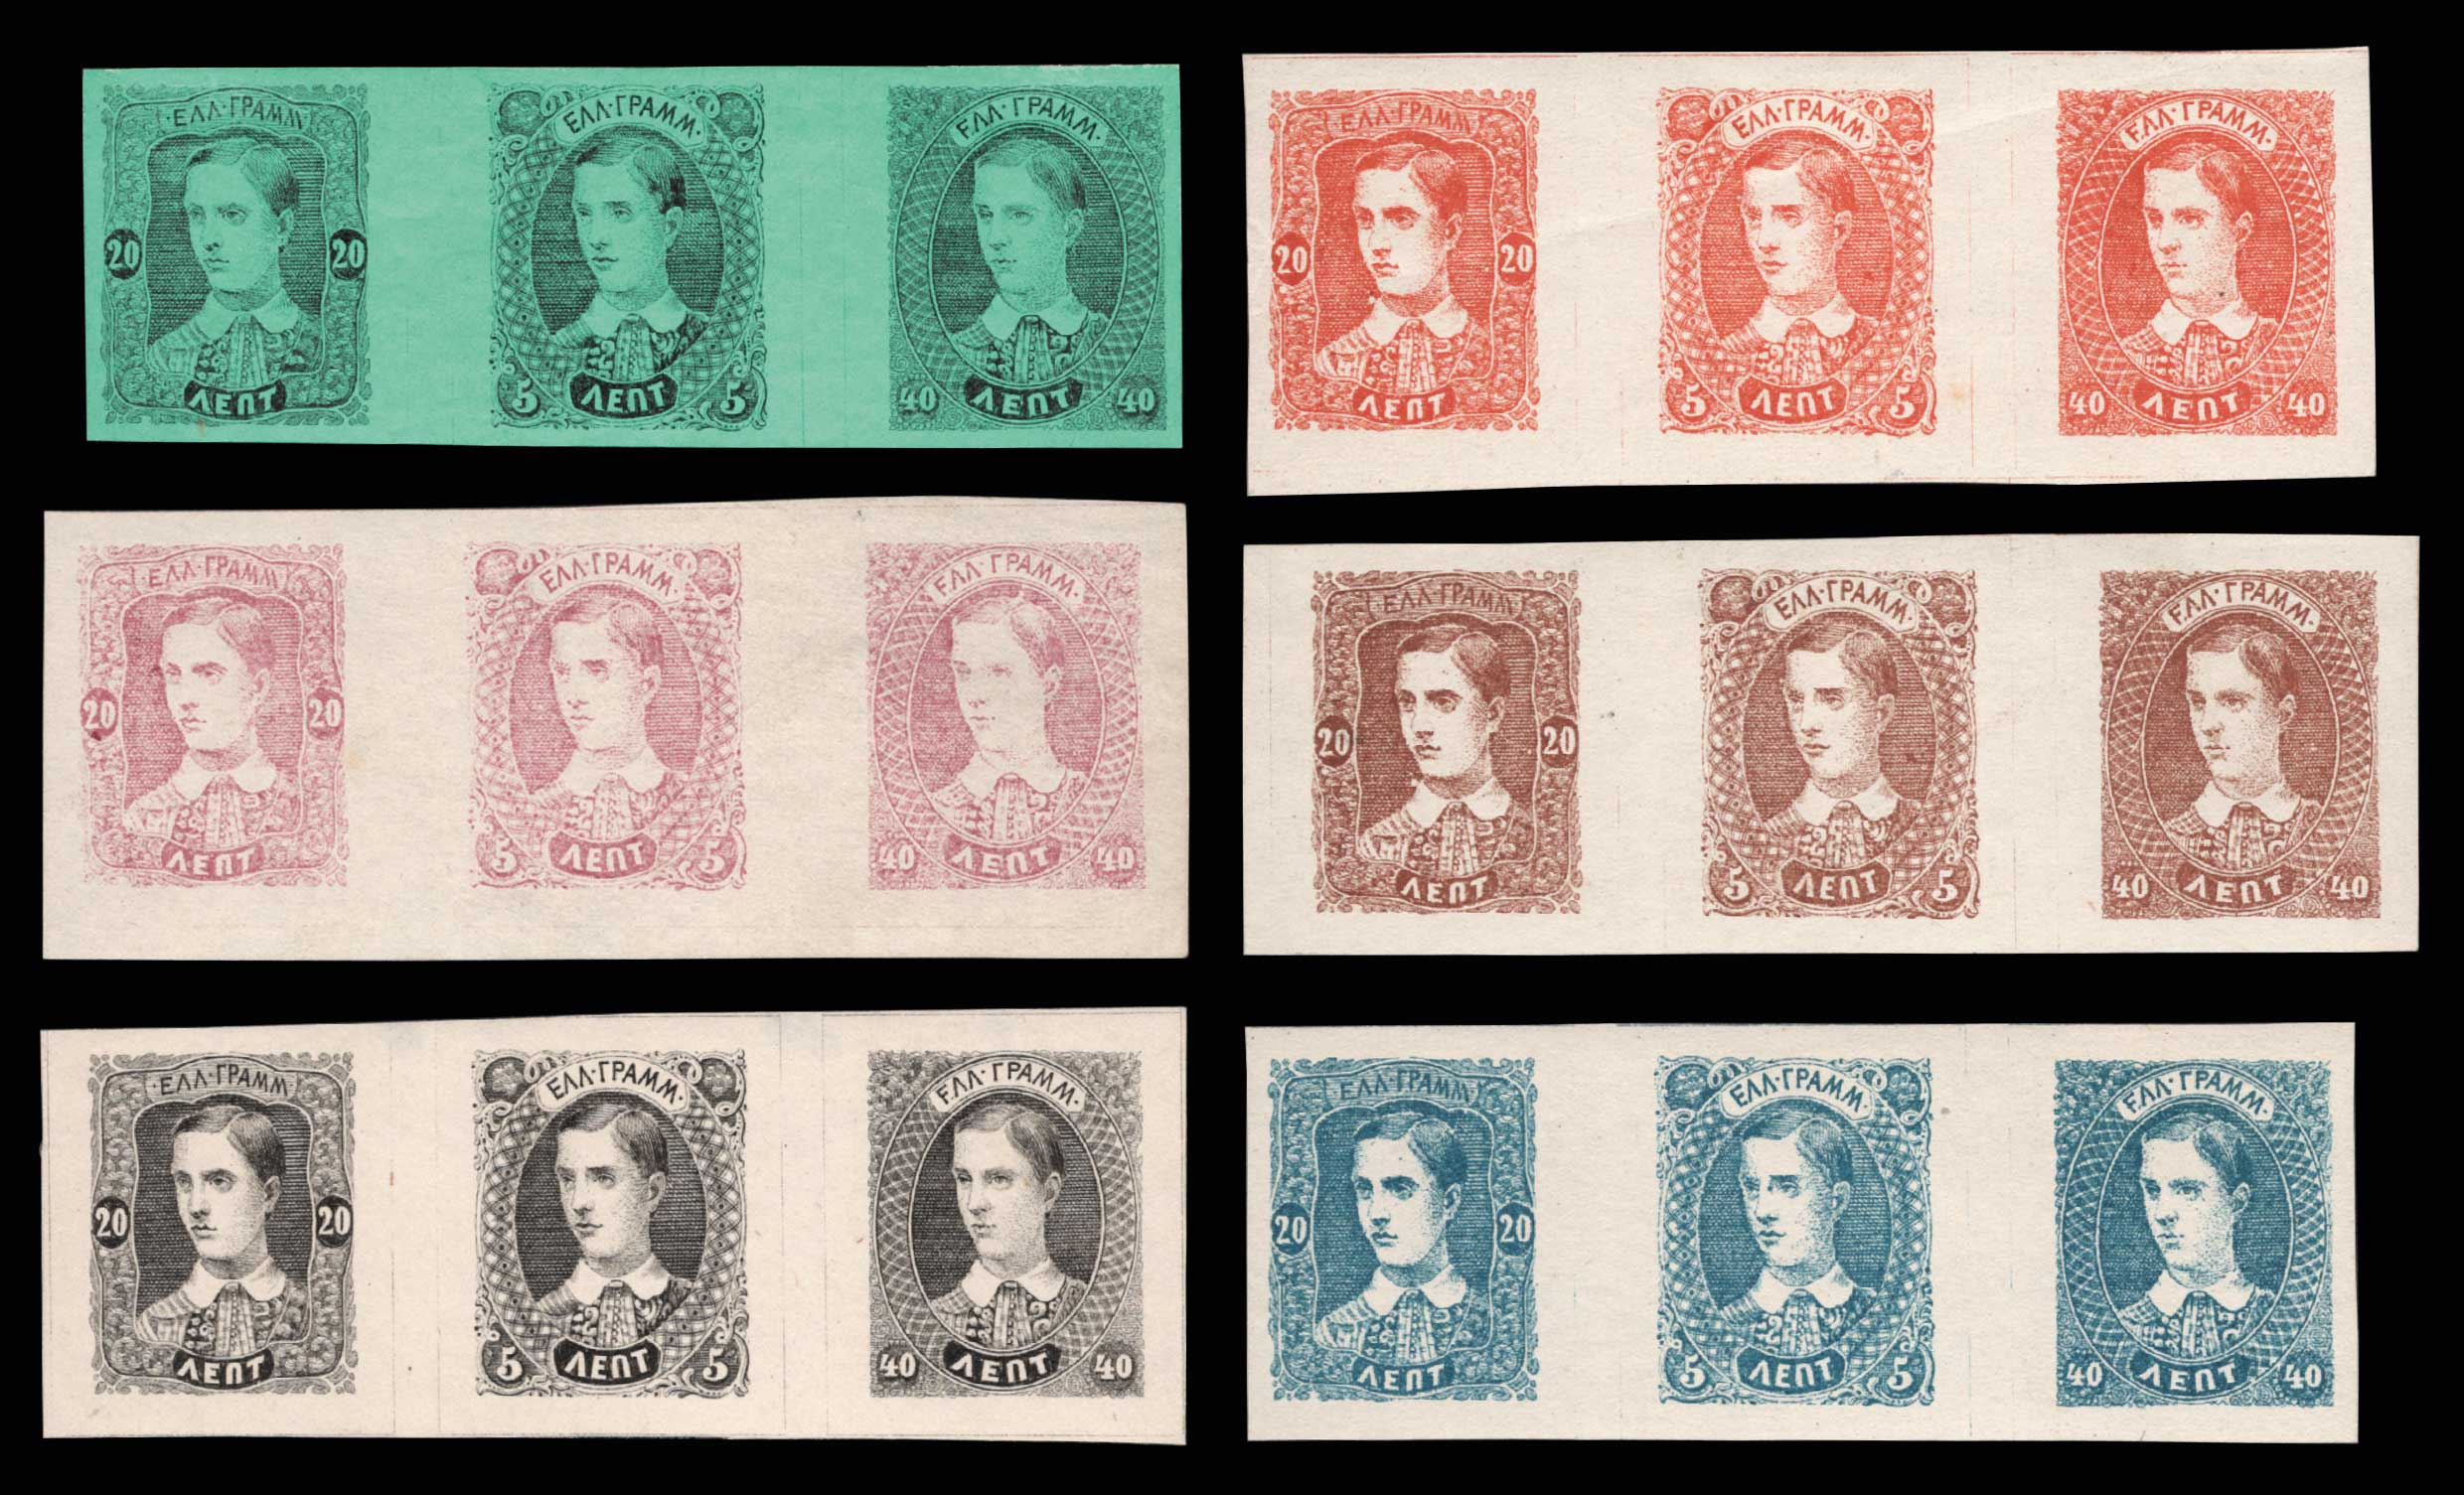 Lot 1505 - -  MISCELLANEOUS LOTS & ACCUMULATIONS MISCELLANEOUS LOTS & ACCUMULATIONS -  Athens Auctions Public Auction 89 General Stamp Sale